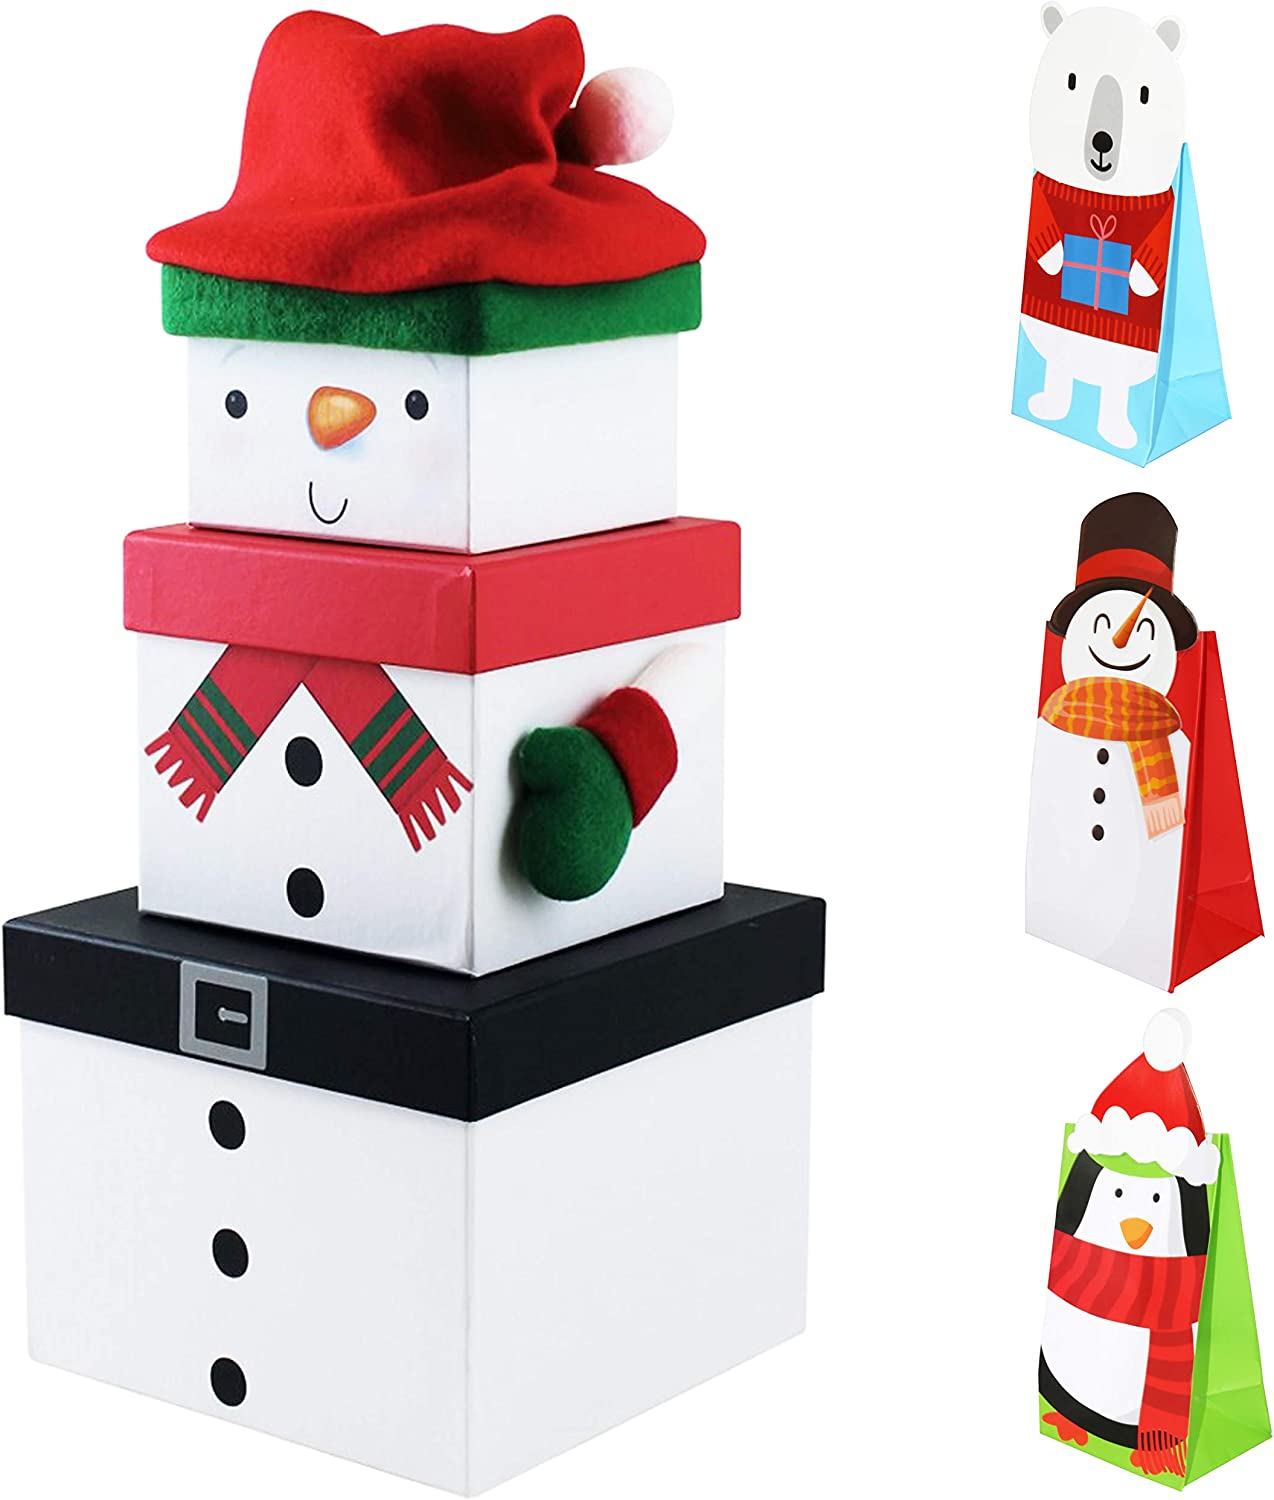 Penguin Oxford Novelties 3 Stack-able Nest Gift Present Boxes Christmas Eve Characters With 1 Treat Bag